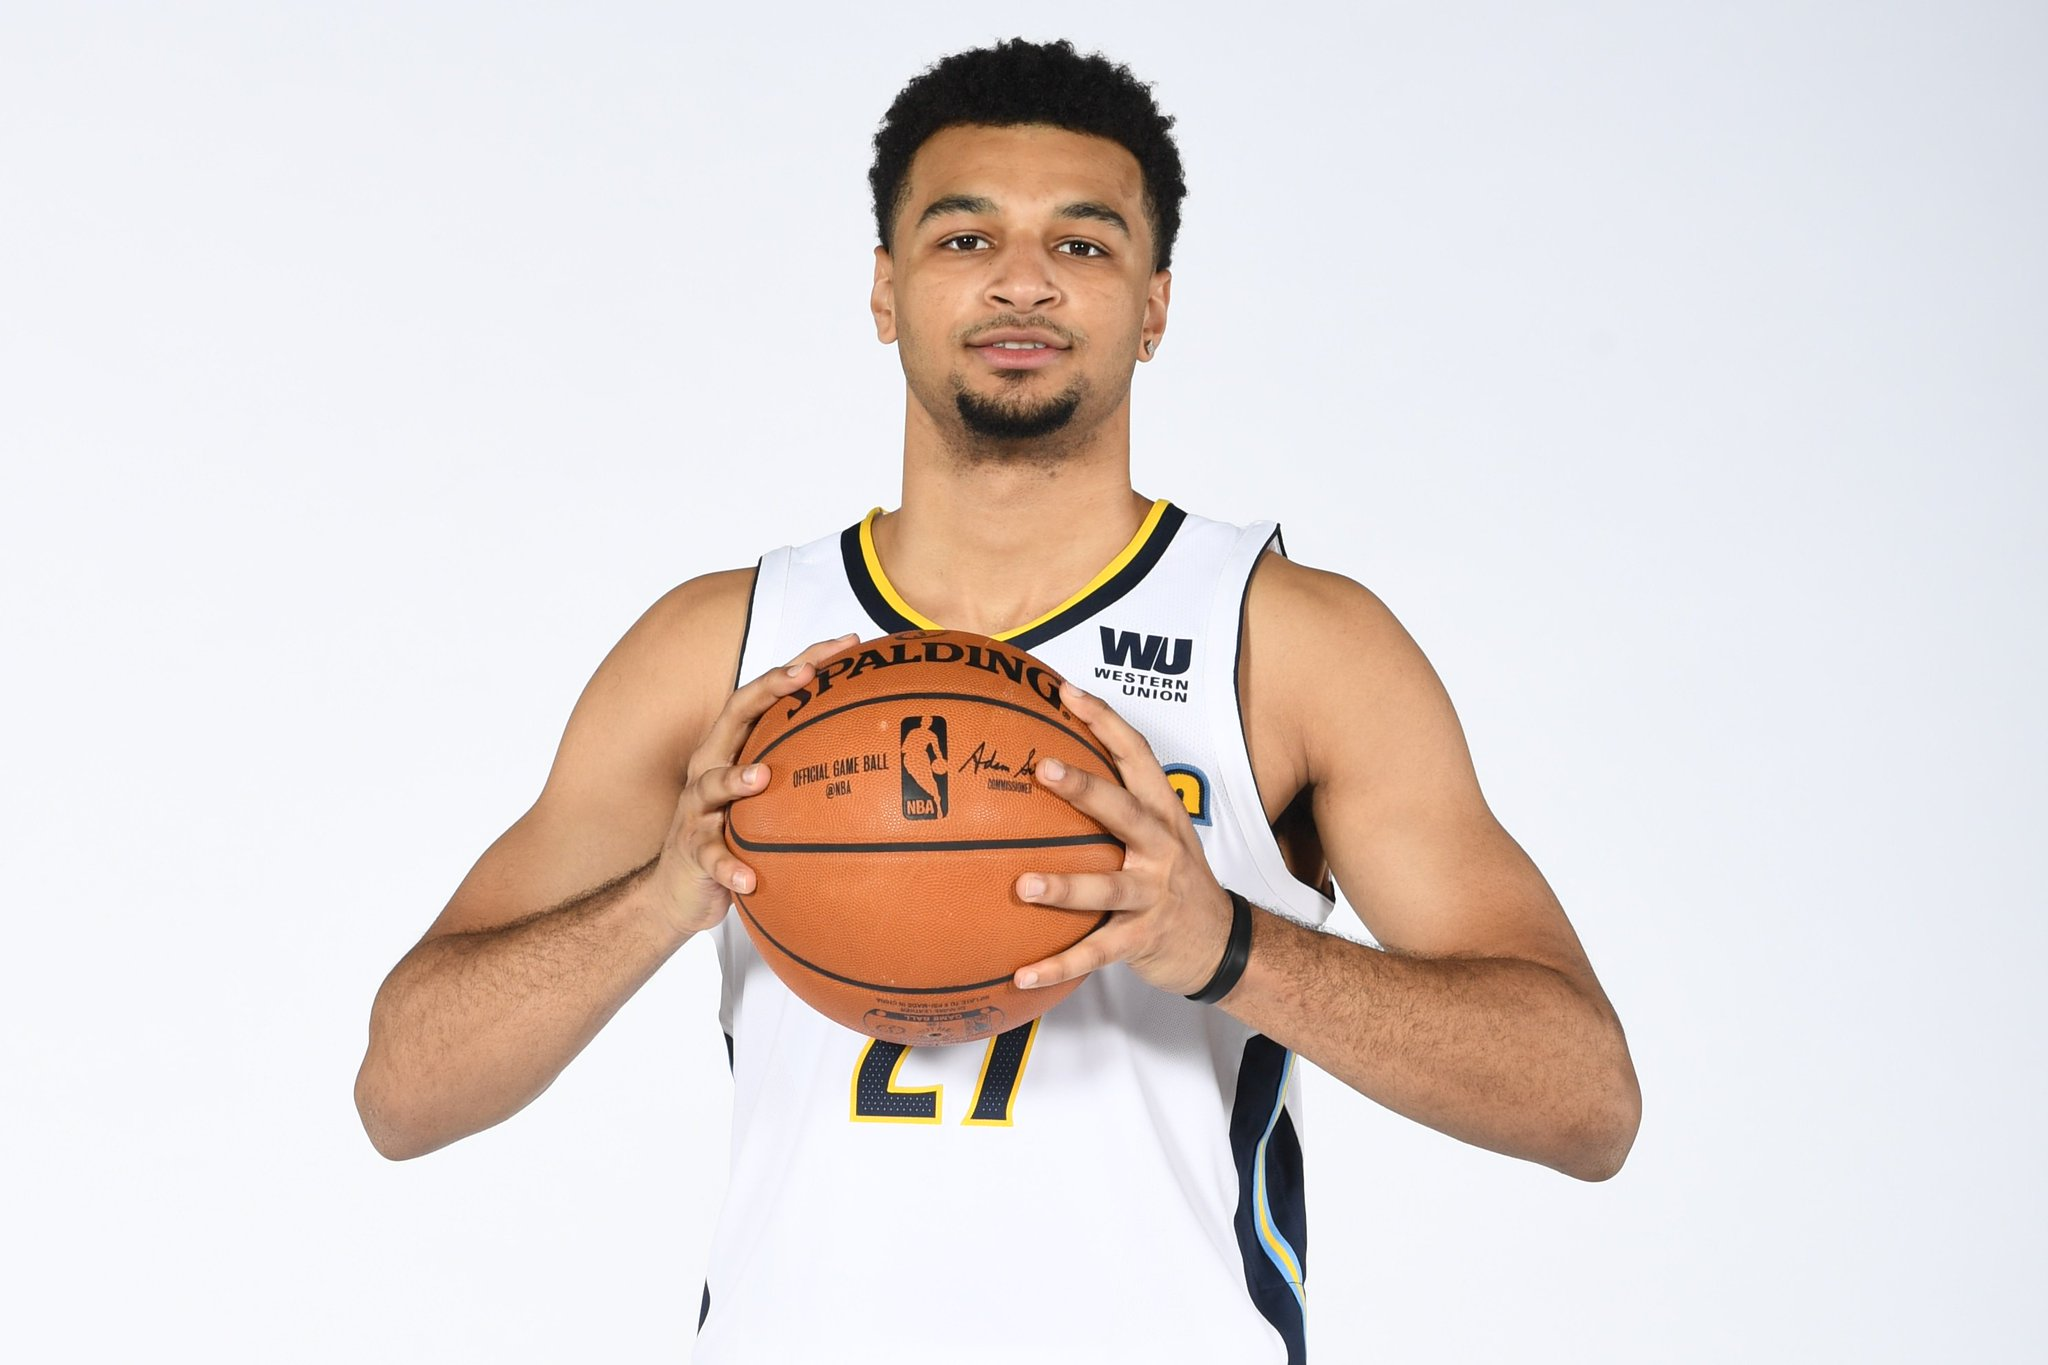 Join us in wishing @BeMore27 of the @nuggets a HAPPY 21st BIRTHDAY!   #NBABDAY #MIleHighBasketball https://t.co/I5QAb3a5uR